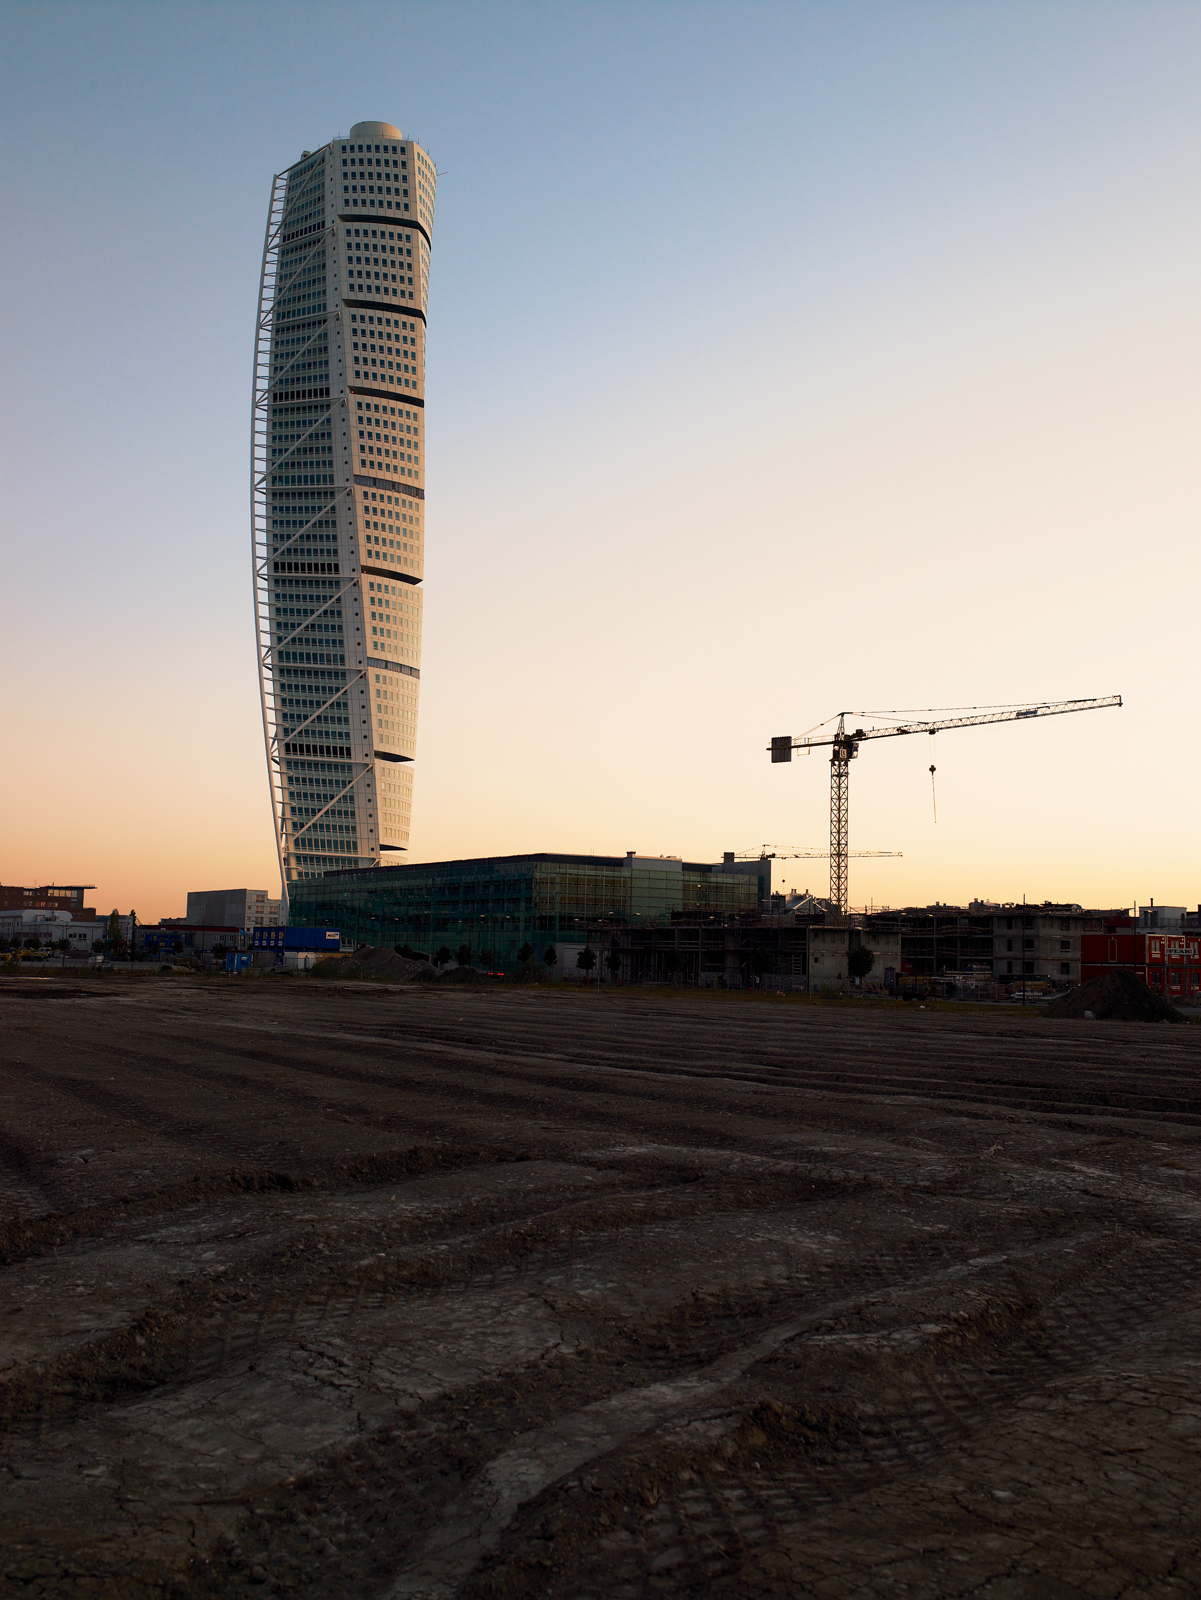 The proverbial ivory tower of urban regeneration, Santiago Calatrava's Turning Torso stands proud amid the rubble of redevelopment.